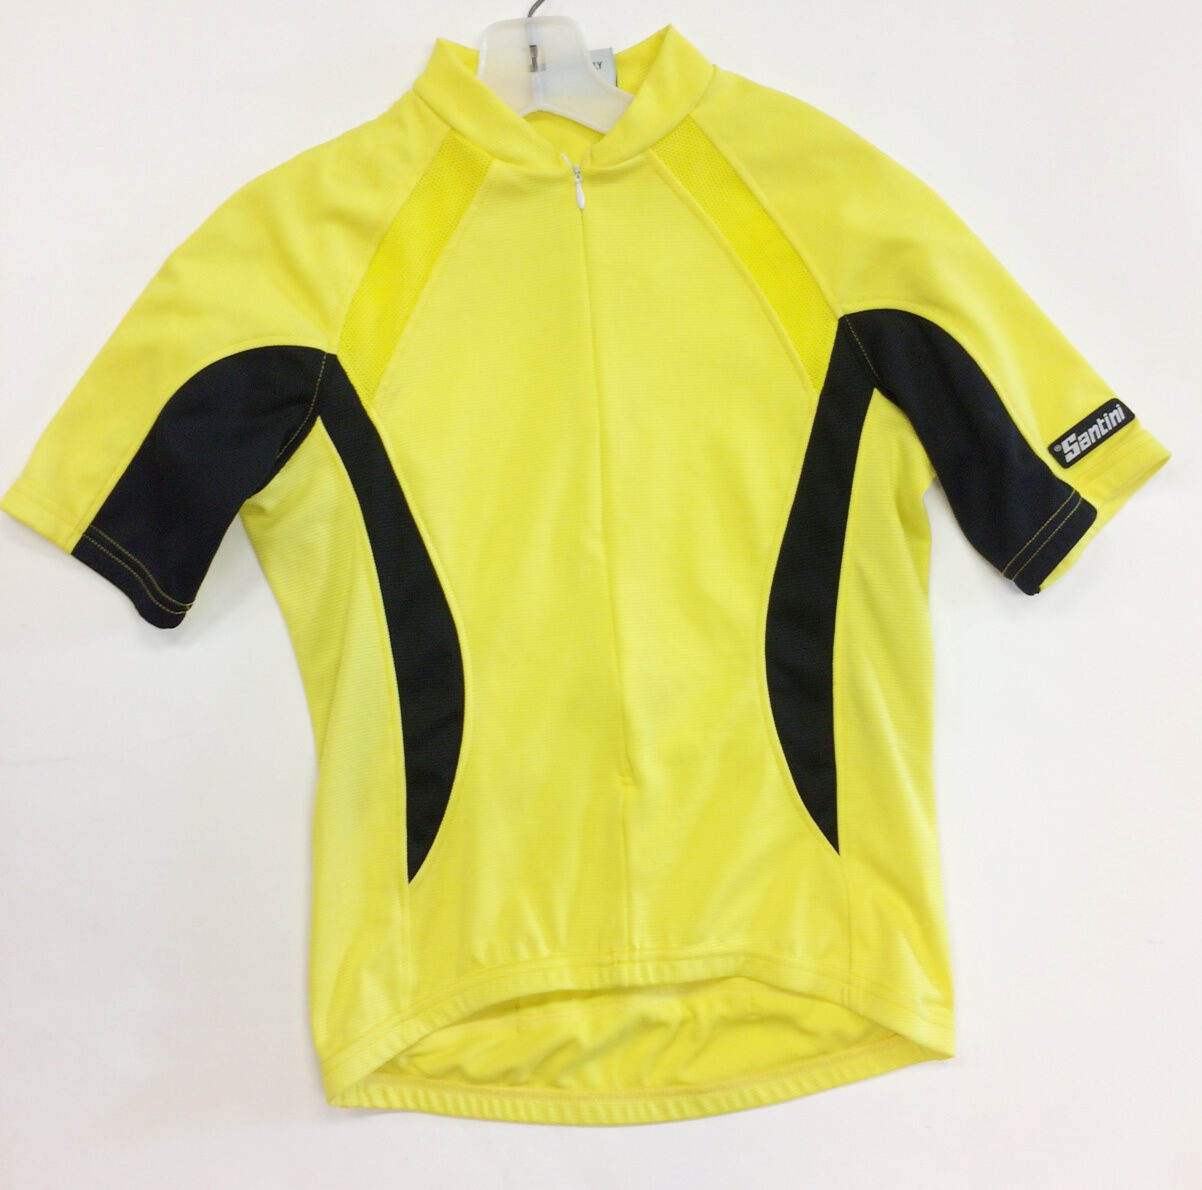 Real ciclismo SHORT SLEEVE JERSEY in gituttio  fatto in  by Santini